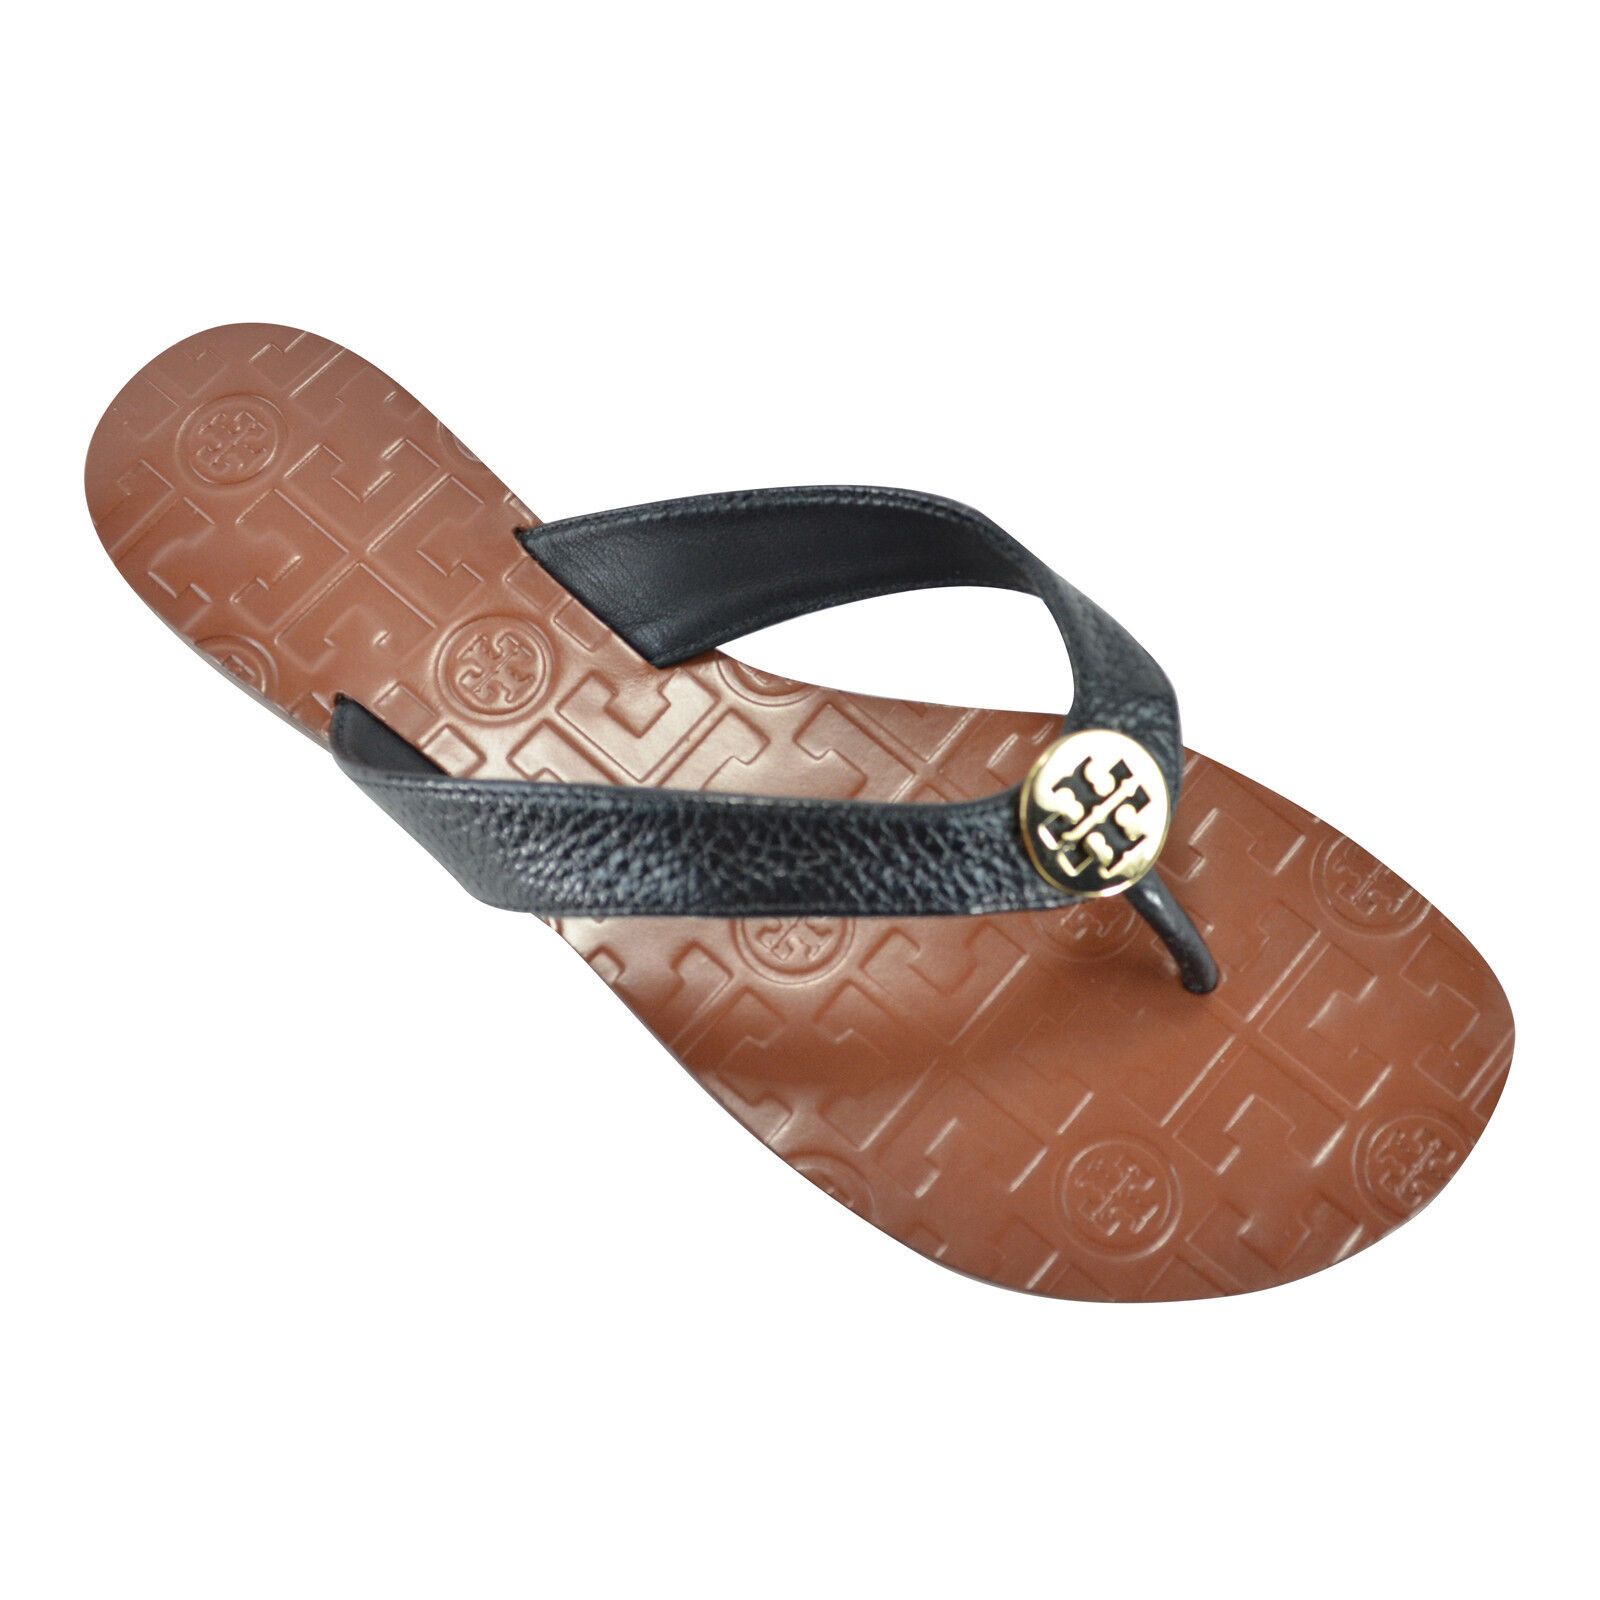 0f4ba97245bb Details about NEW Tory Burch THORA Leather Thong Sandals in Black Gold Size  9